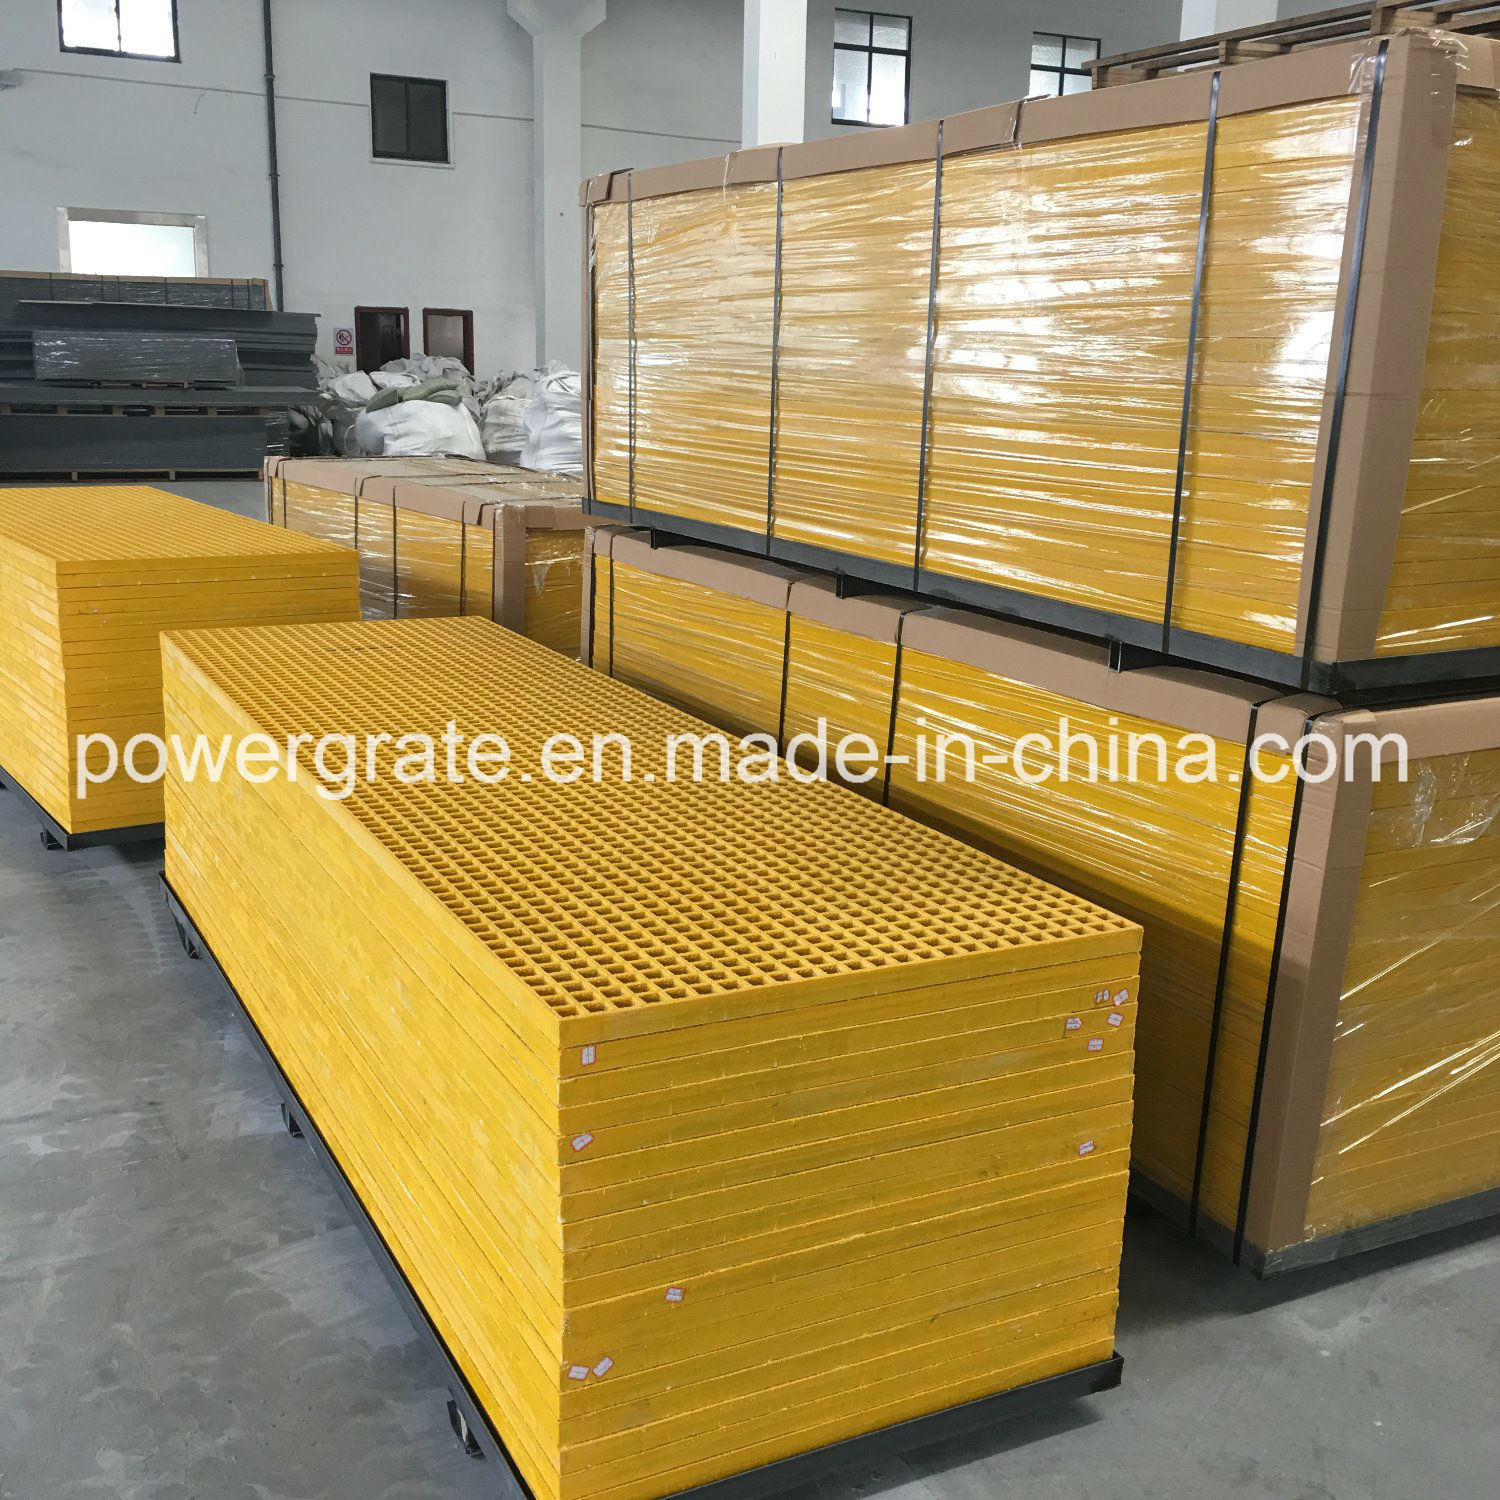 Powergrate Fiberglass FRP Grating with Gritted Surface